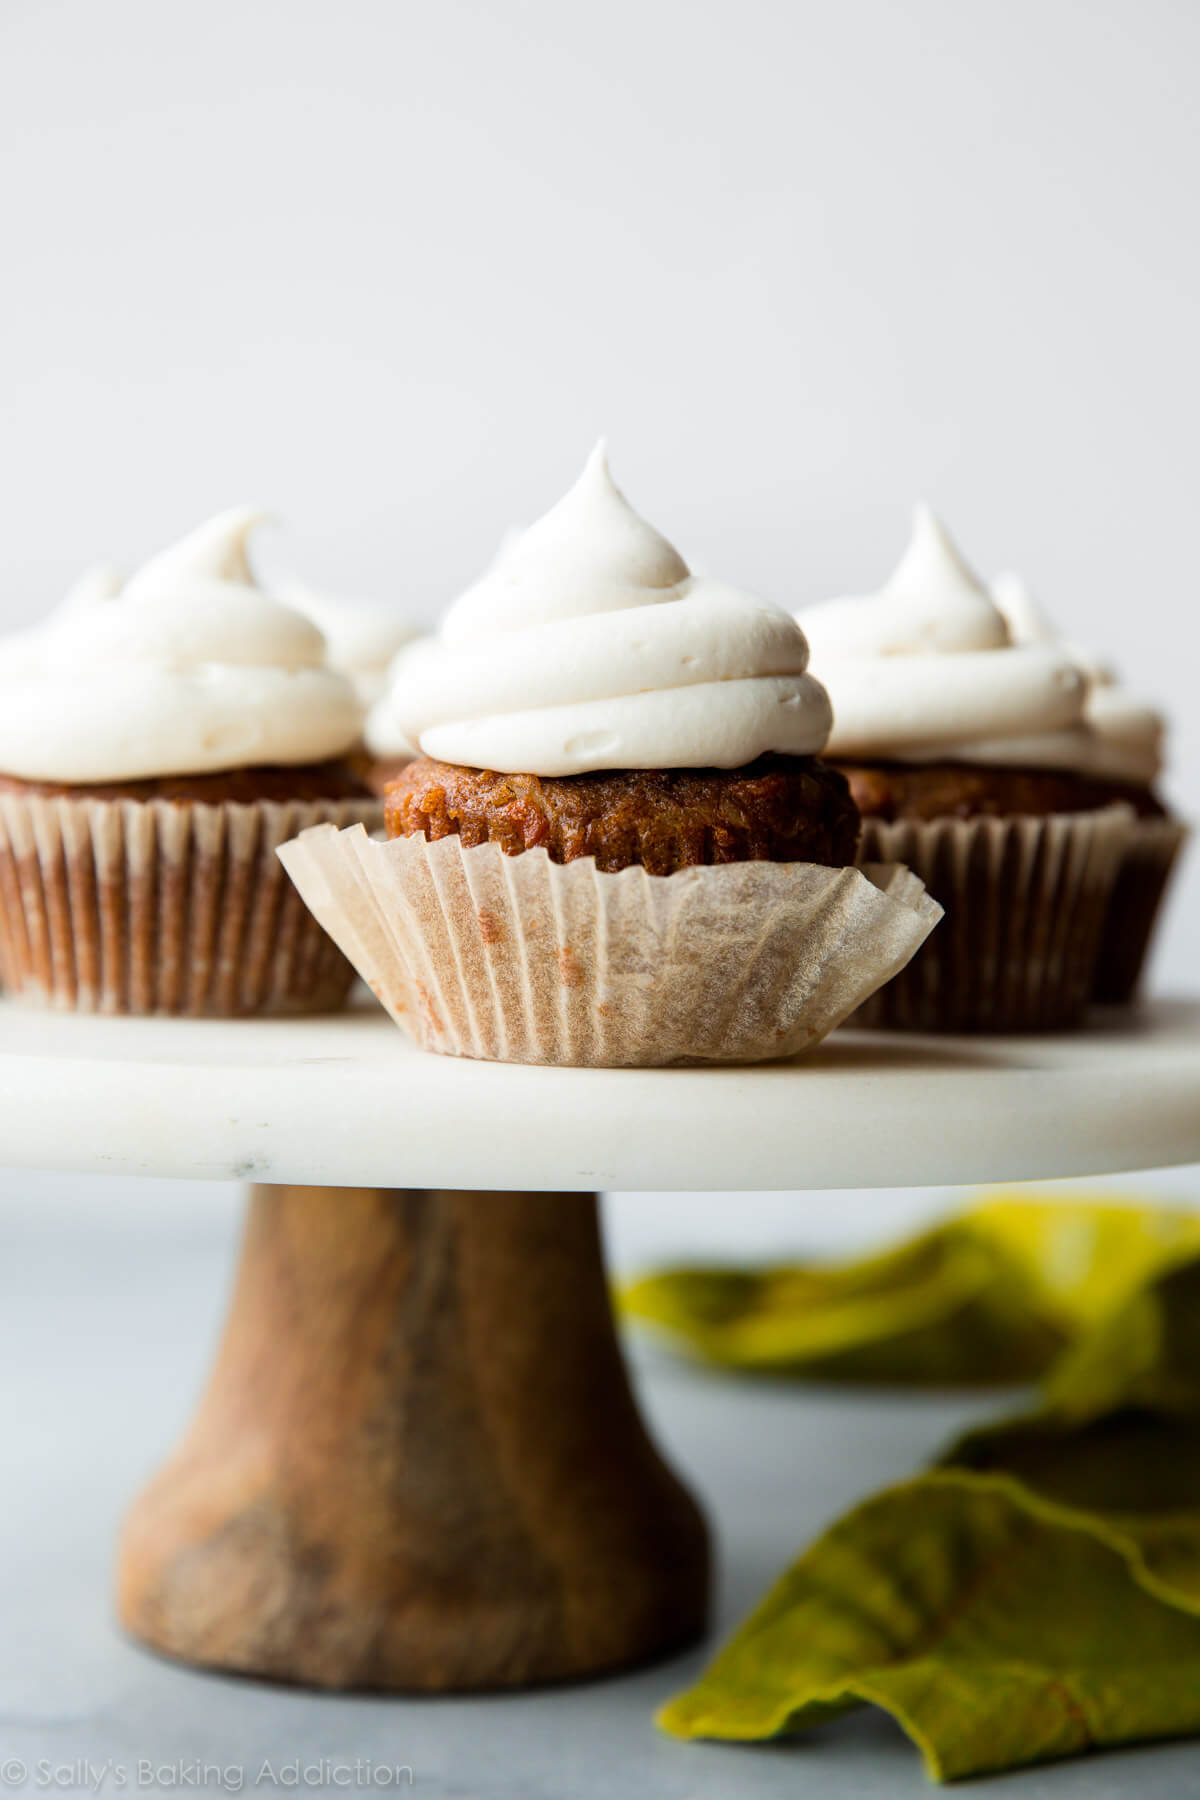 Super spiced and moist carrot cake cupcakes filled with shredded coconut and topped with creamy cream cheese frosting. Recipe on sallysbakingaddiction.com